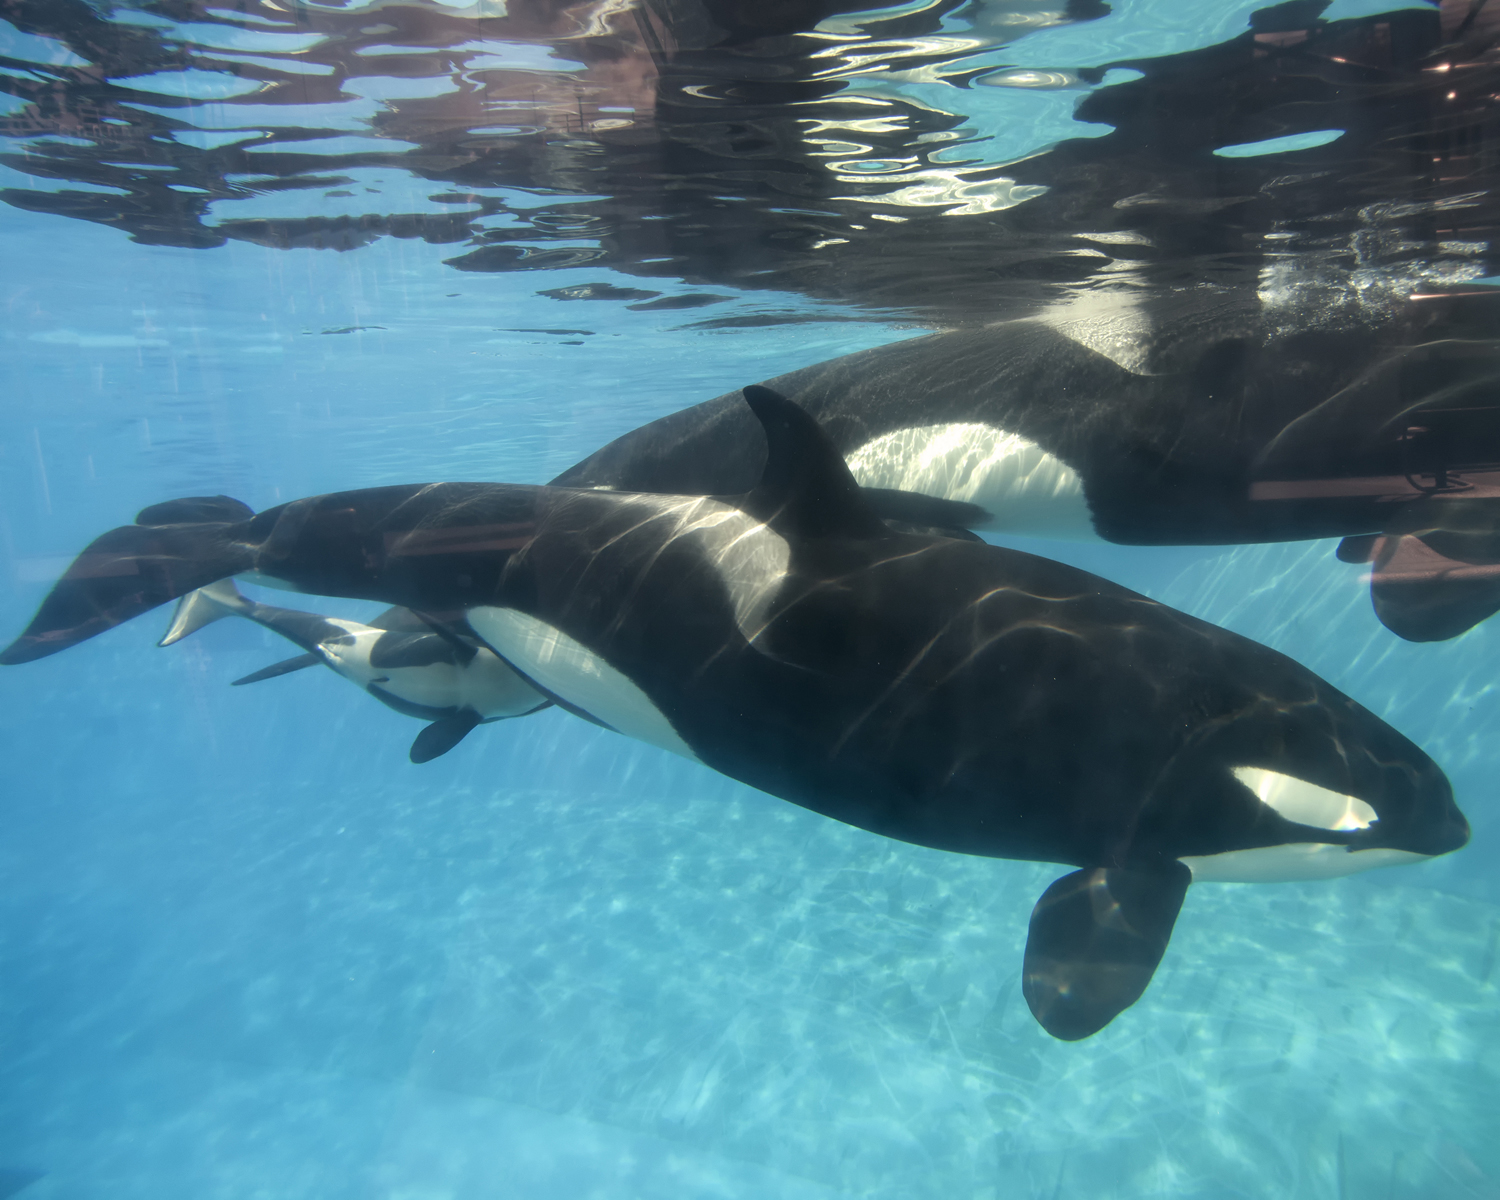 A baby killer whale calf nurses from its mother at SeaWorld San Diego's Shamu Stadium on Dec. 4, 2014 in San Diego